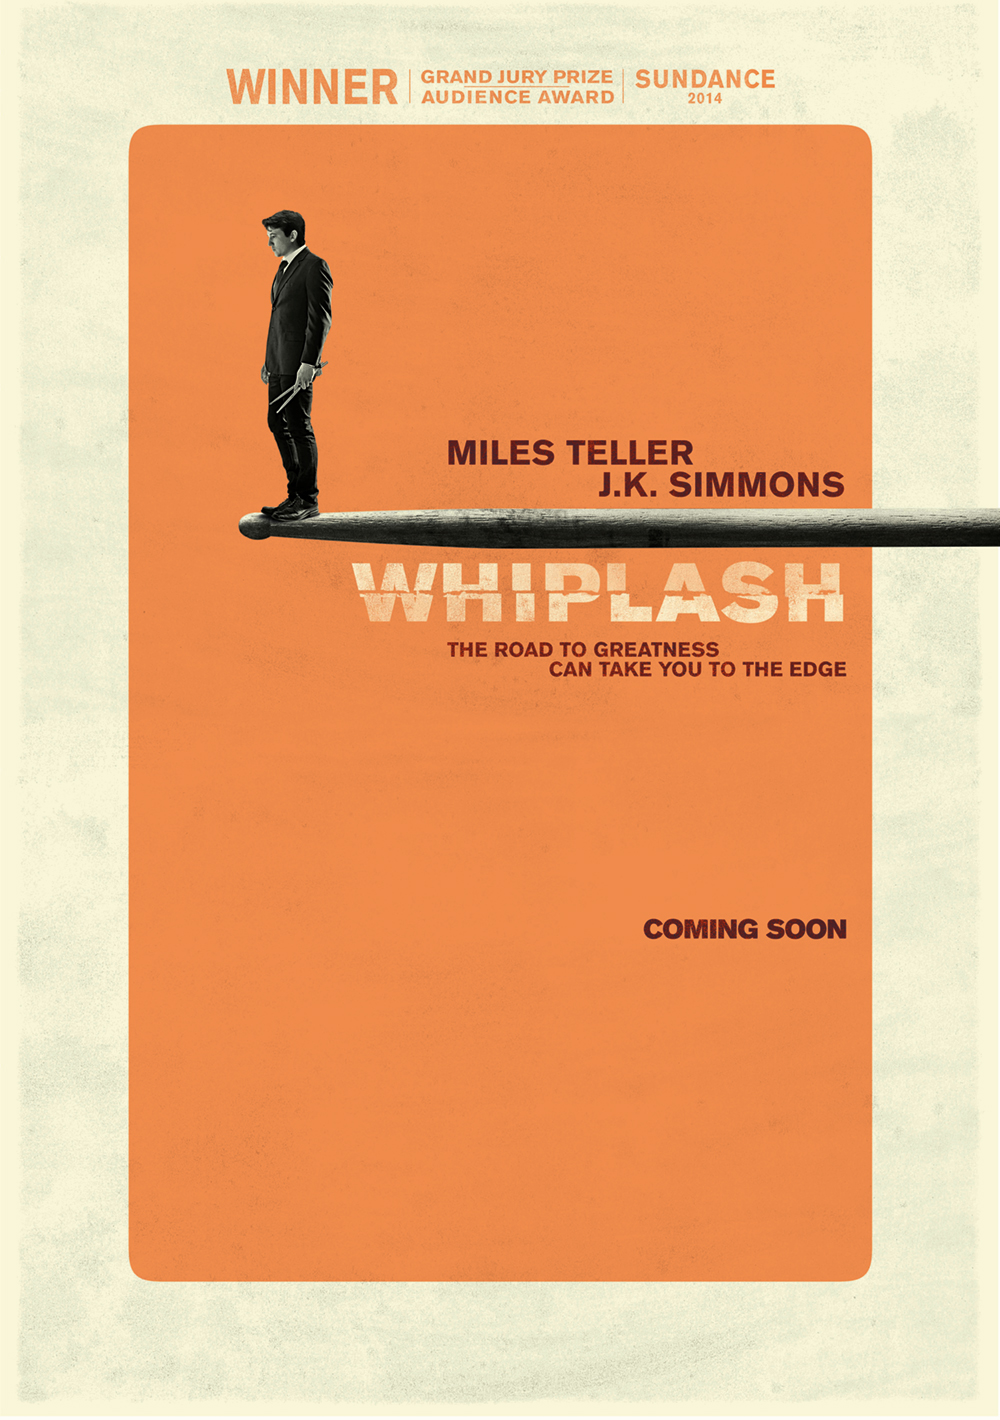 Whiplash poster (cold Open is firm, don't know artist)